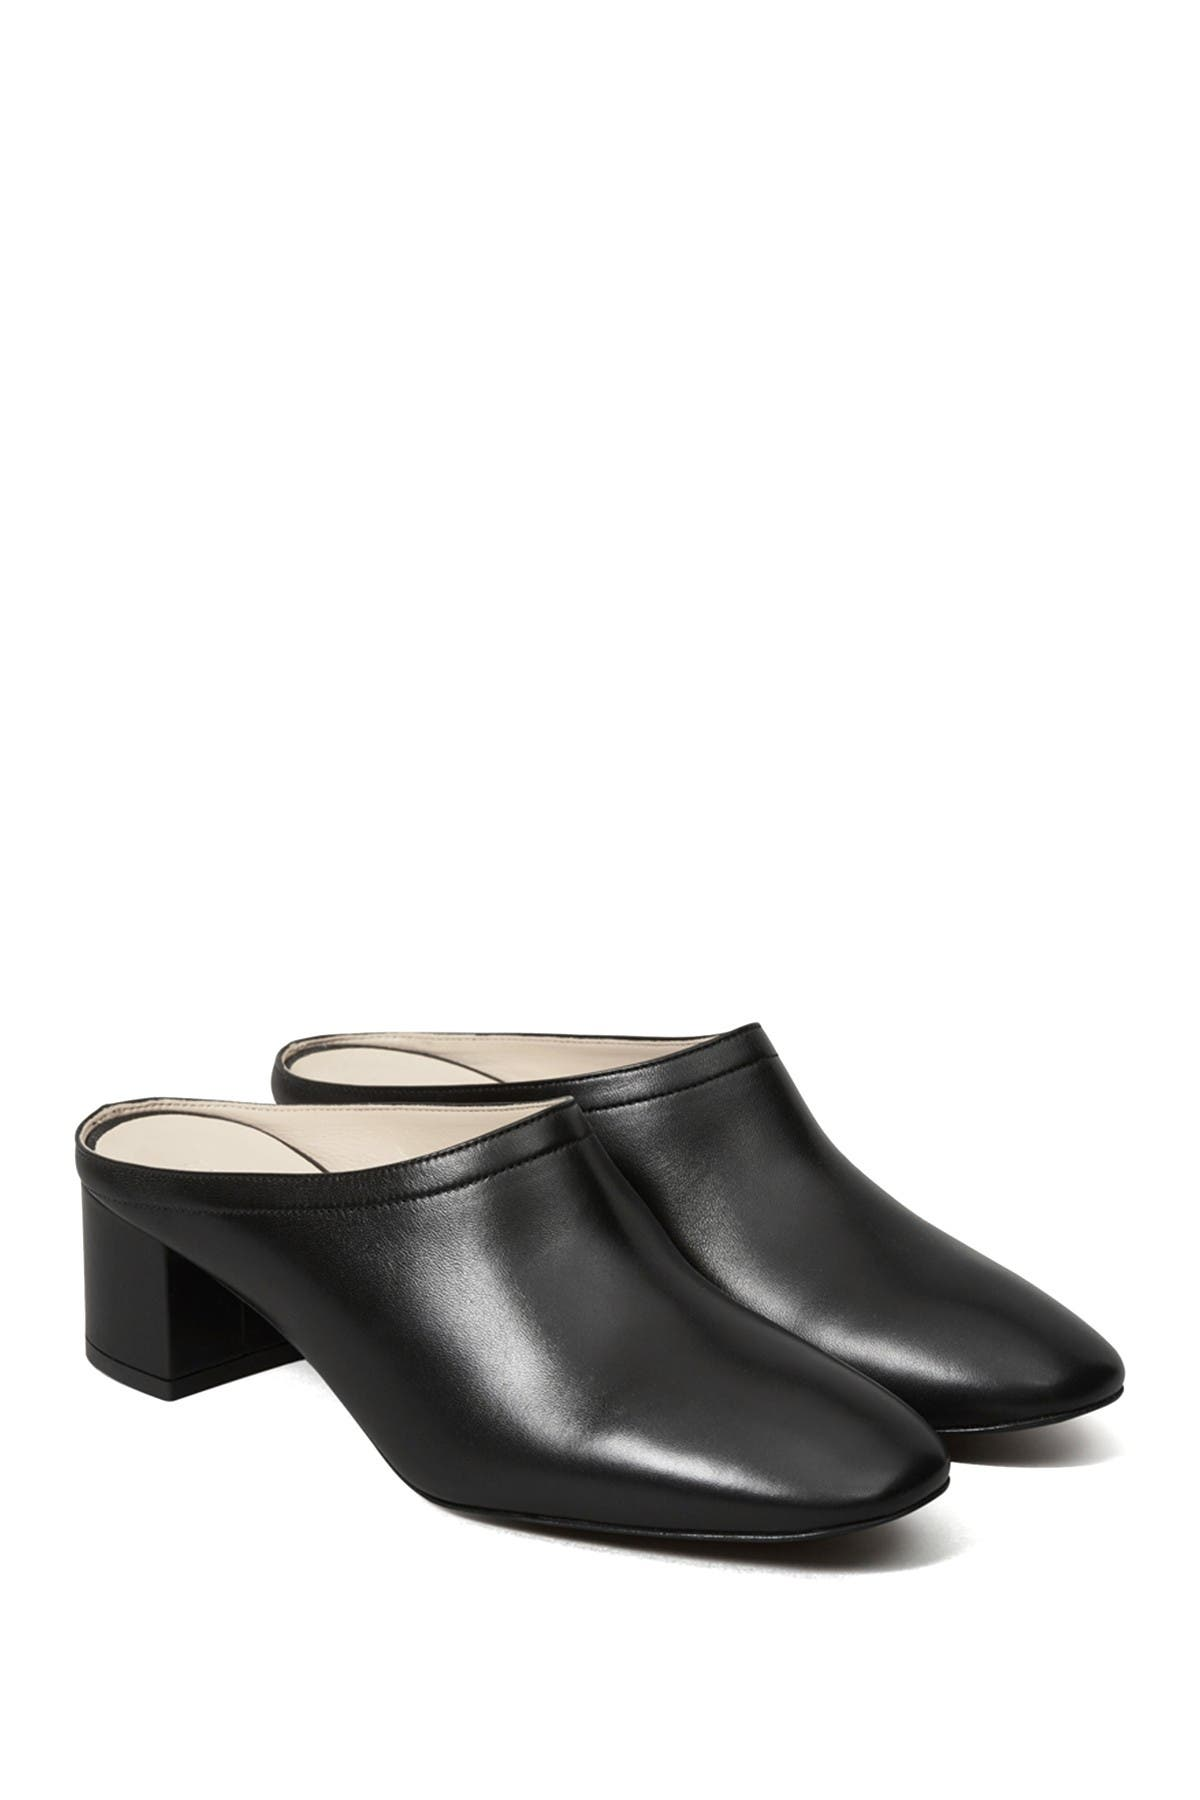 Image of EVERLANE The Day Heel Mule